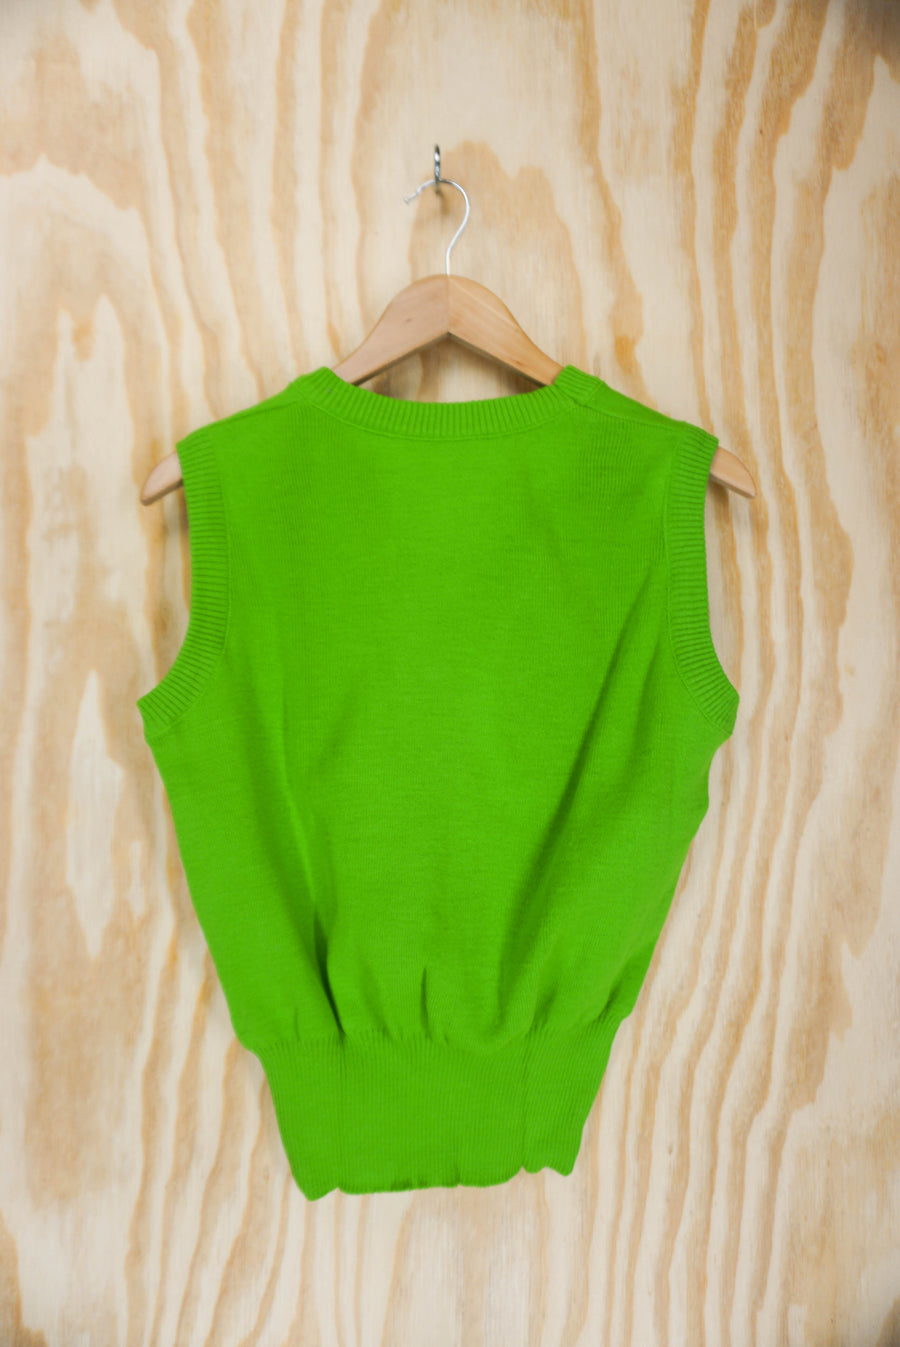 Spencer green - size S